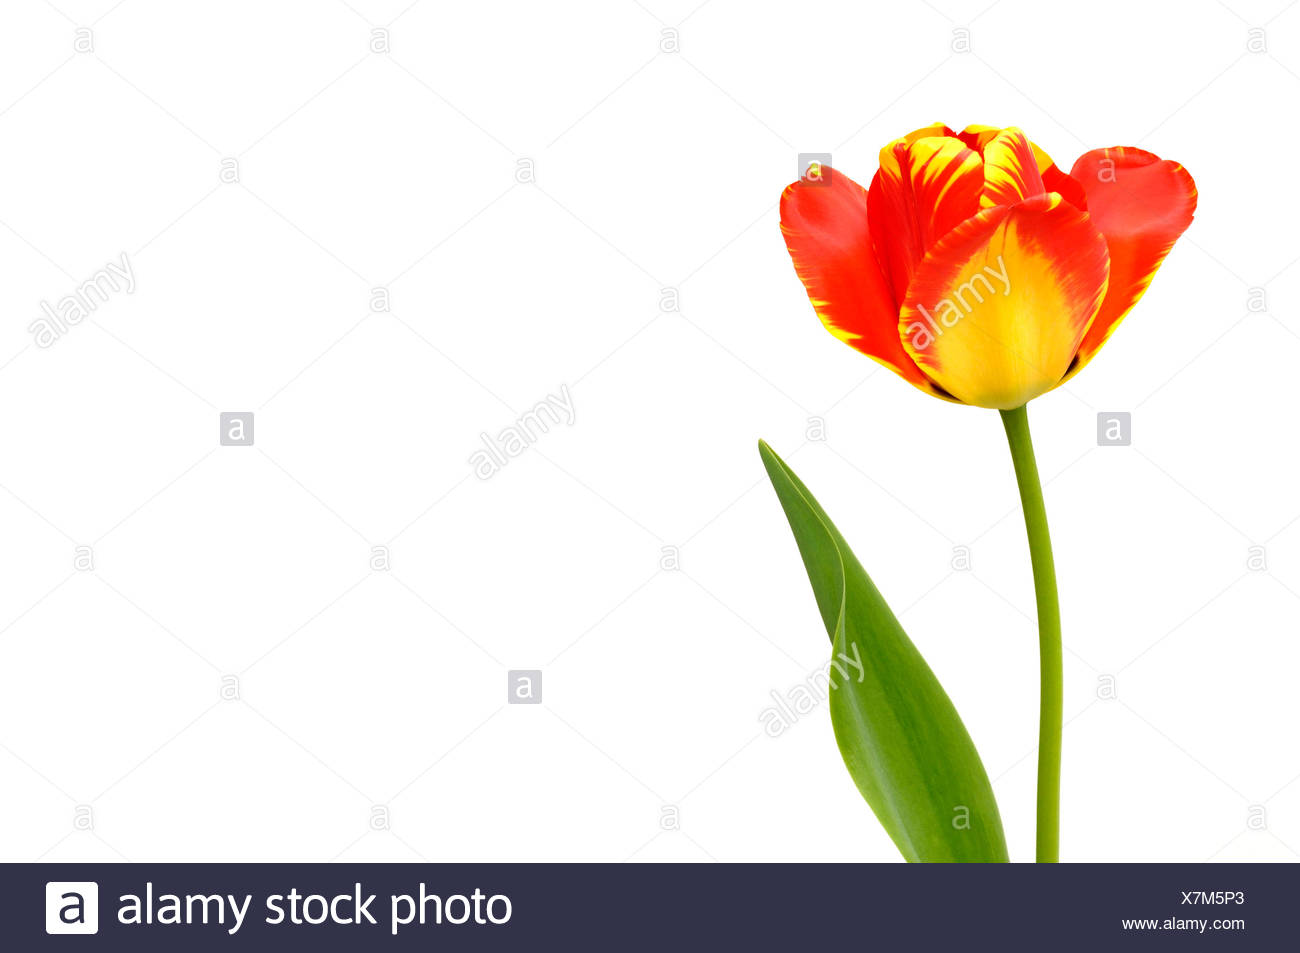 Tulip (Tulipa), red, yellow Stock Photo